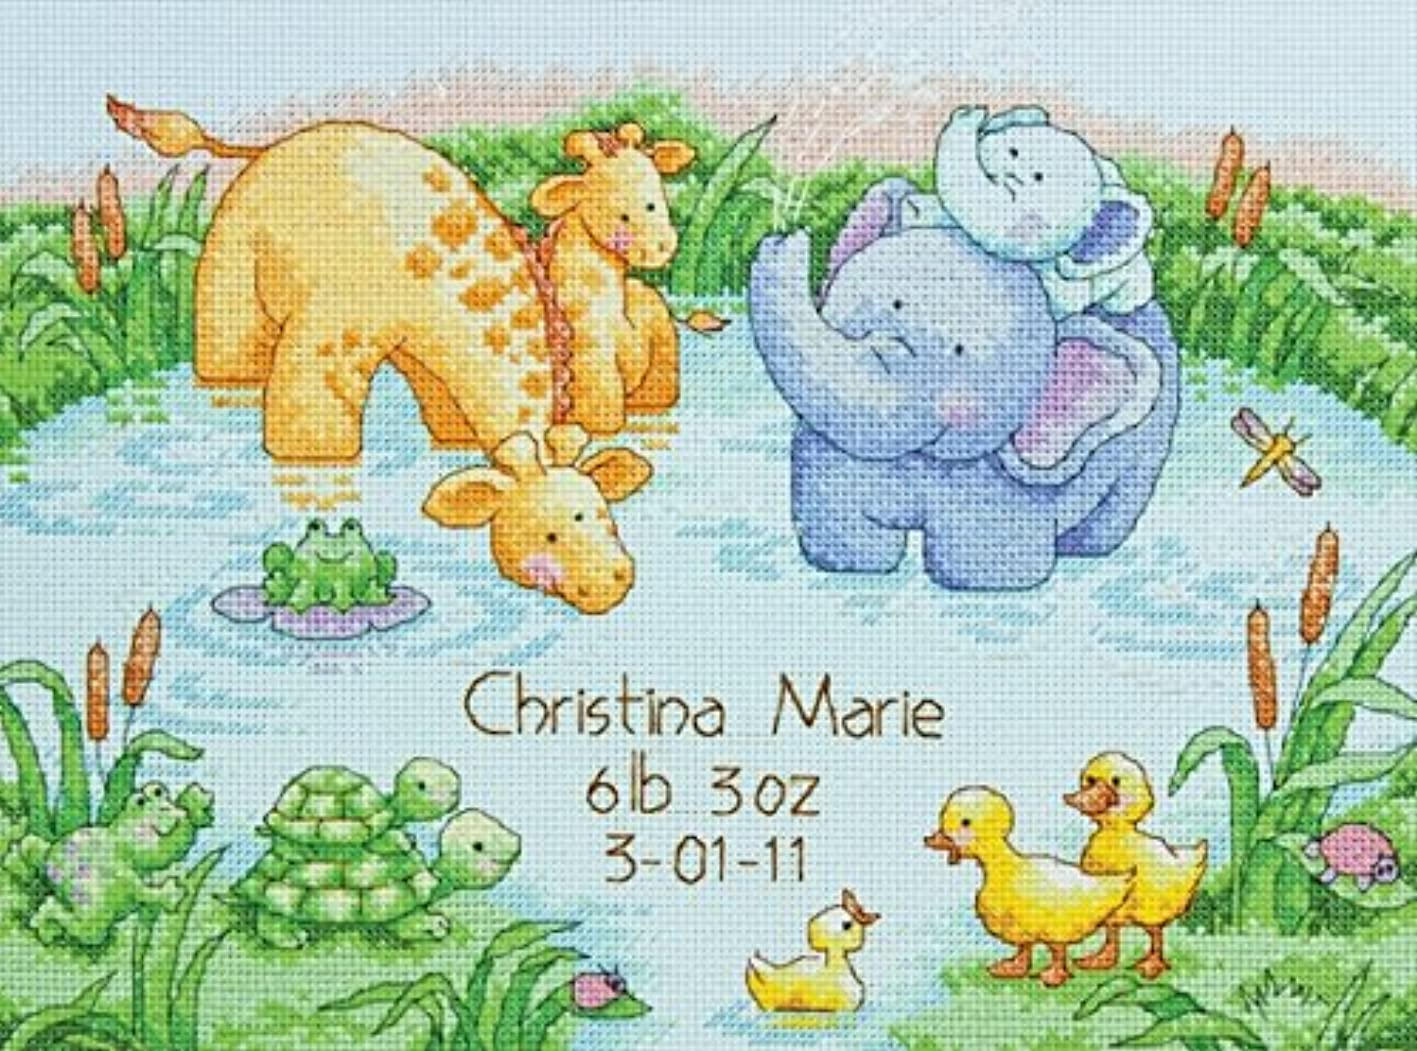 Dimensions 70-73697 Little Pond Birth Record Counted Cross Stitch Kit-12X9 14 Count akcdpstpmex539